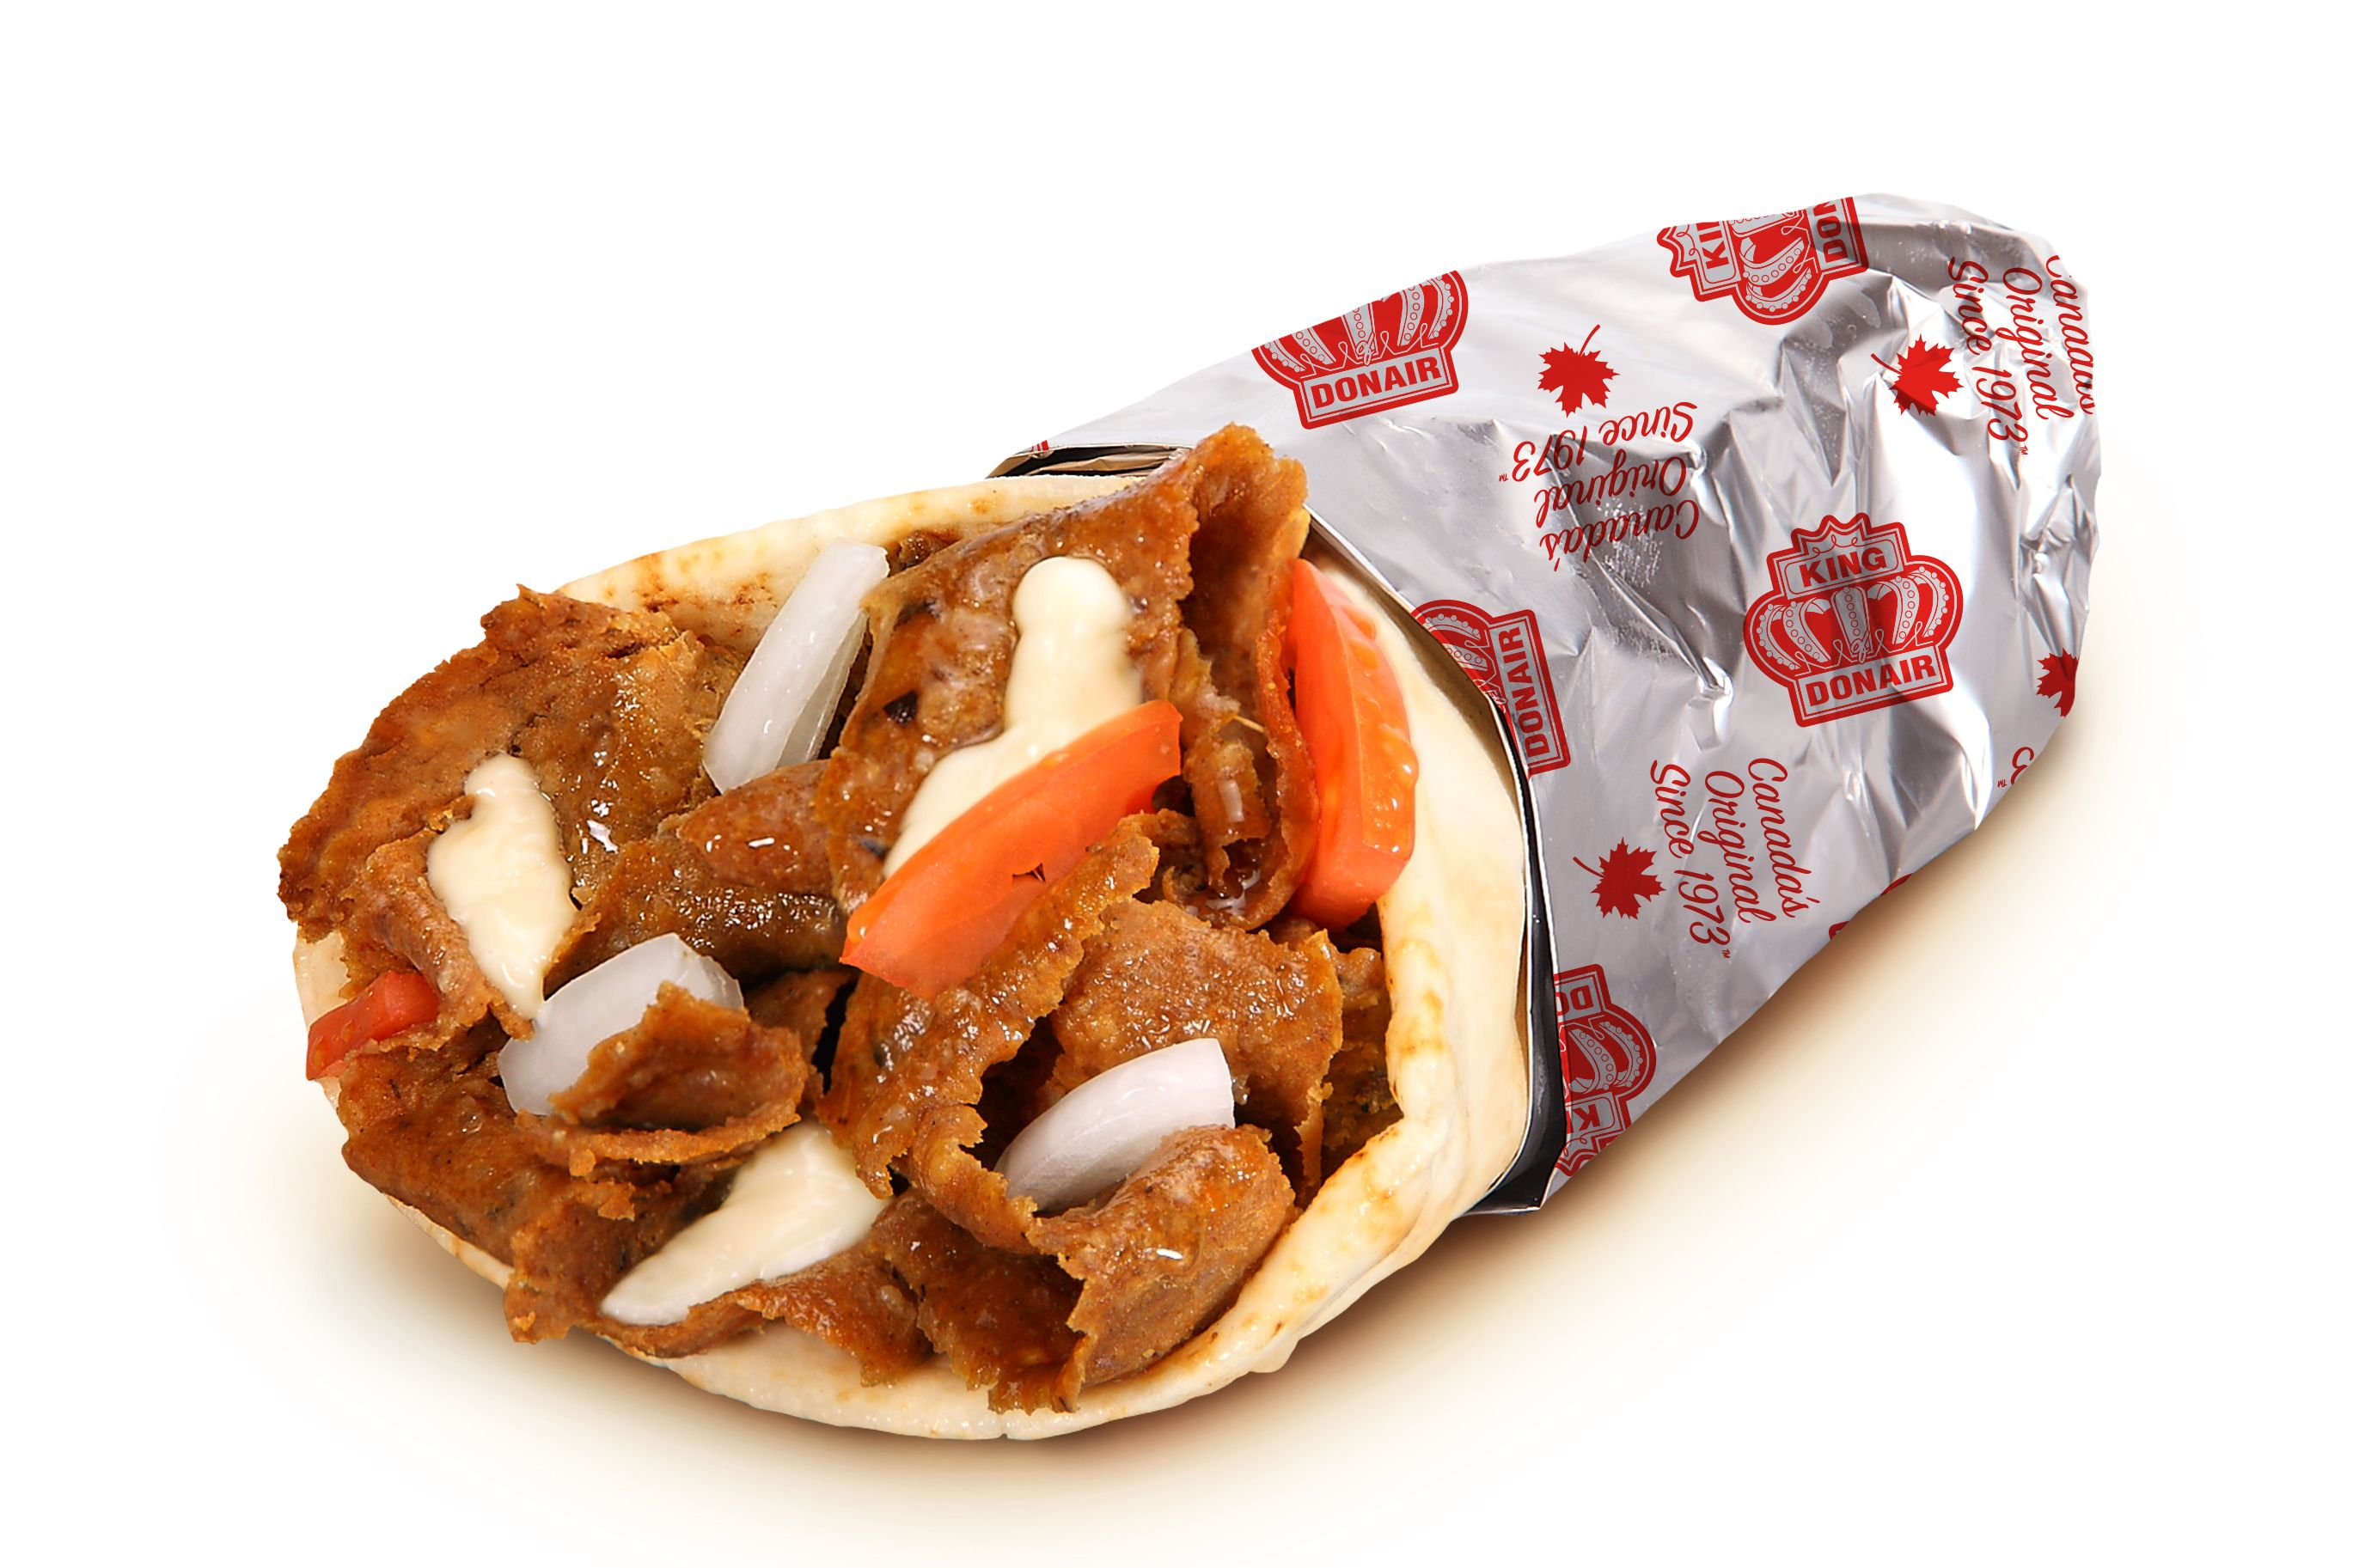 King Of Donair 1824 Mcormond Dr Saskatoon Sk S7s 0a6 Canada Order Delivery Take Out Online Skipthedishes